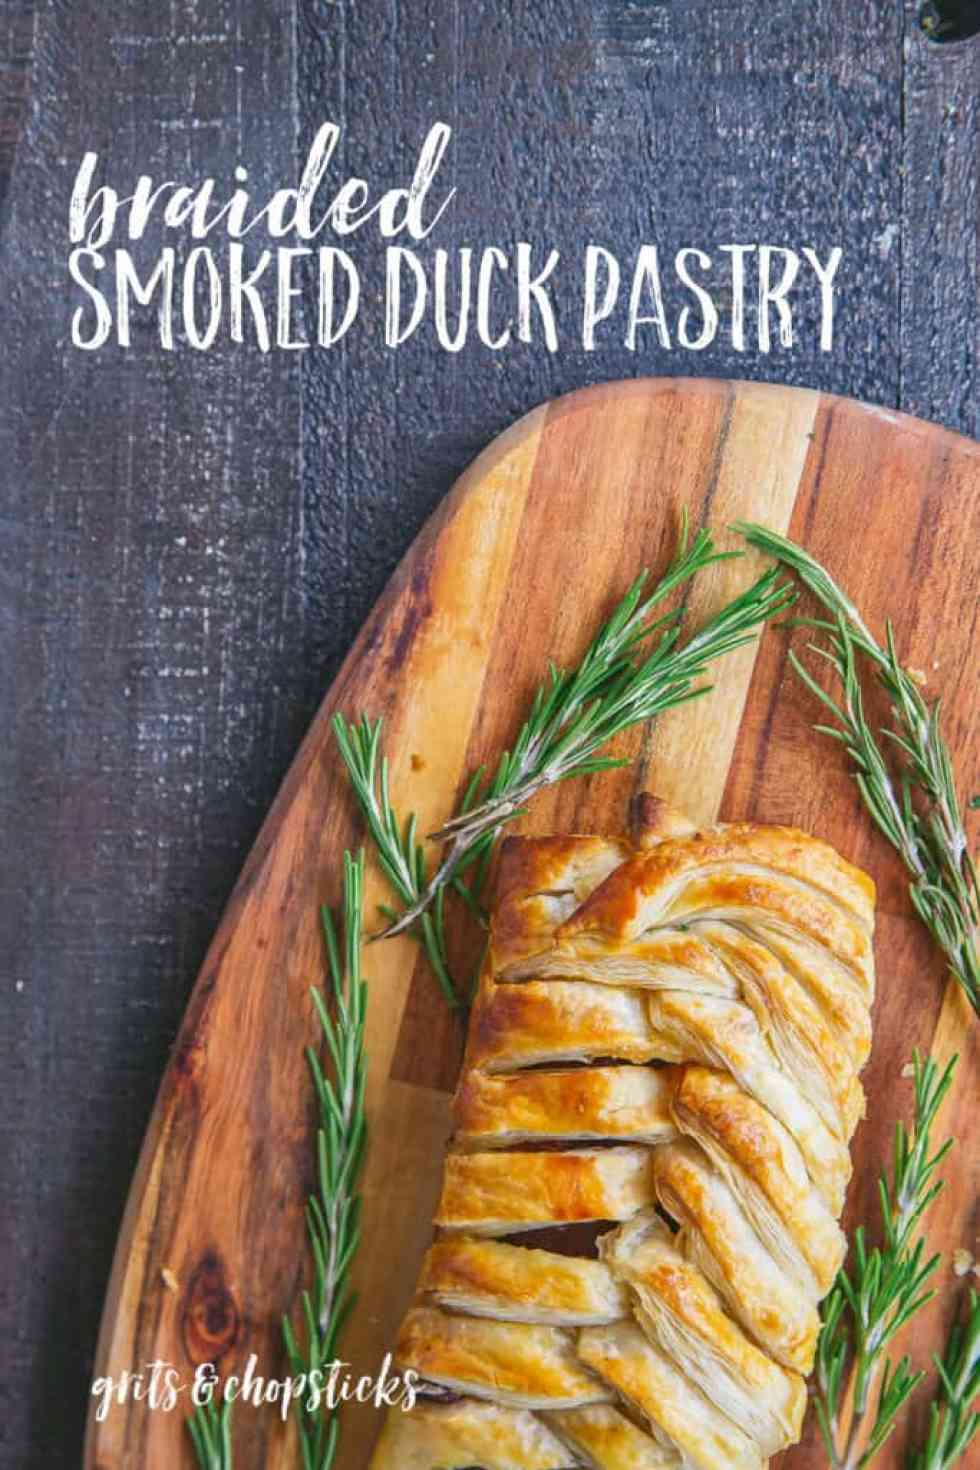 This holiday season, spice up your party spread with cured meats from Les Trois Petits Cochons, like this braided smoked duck pastry!